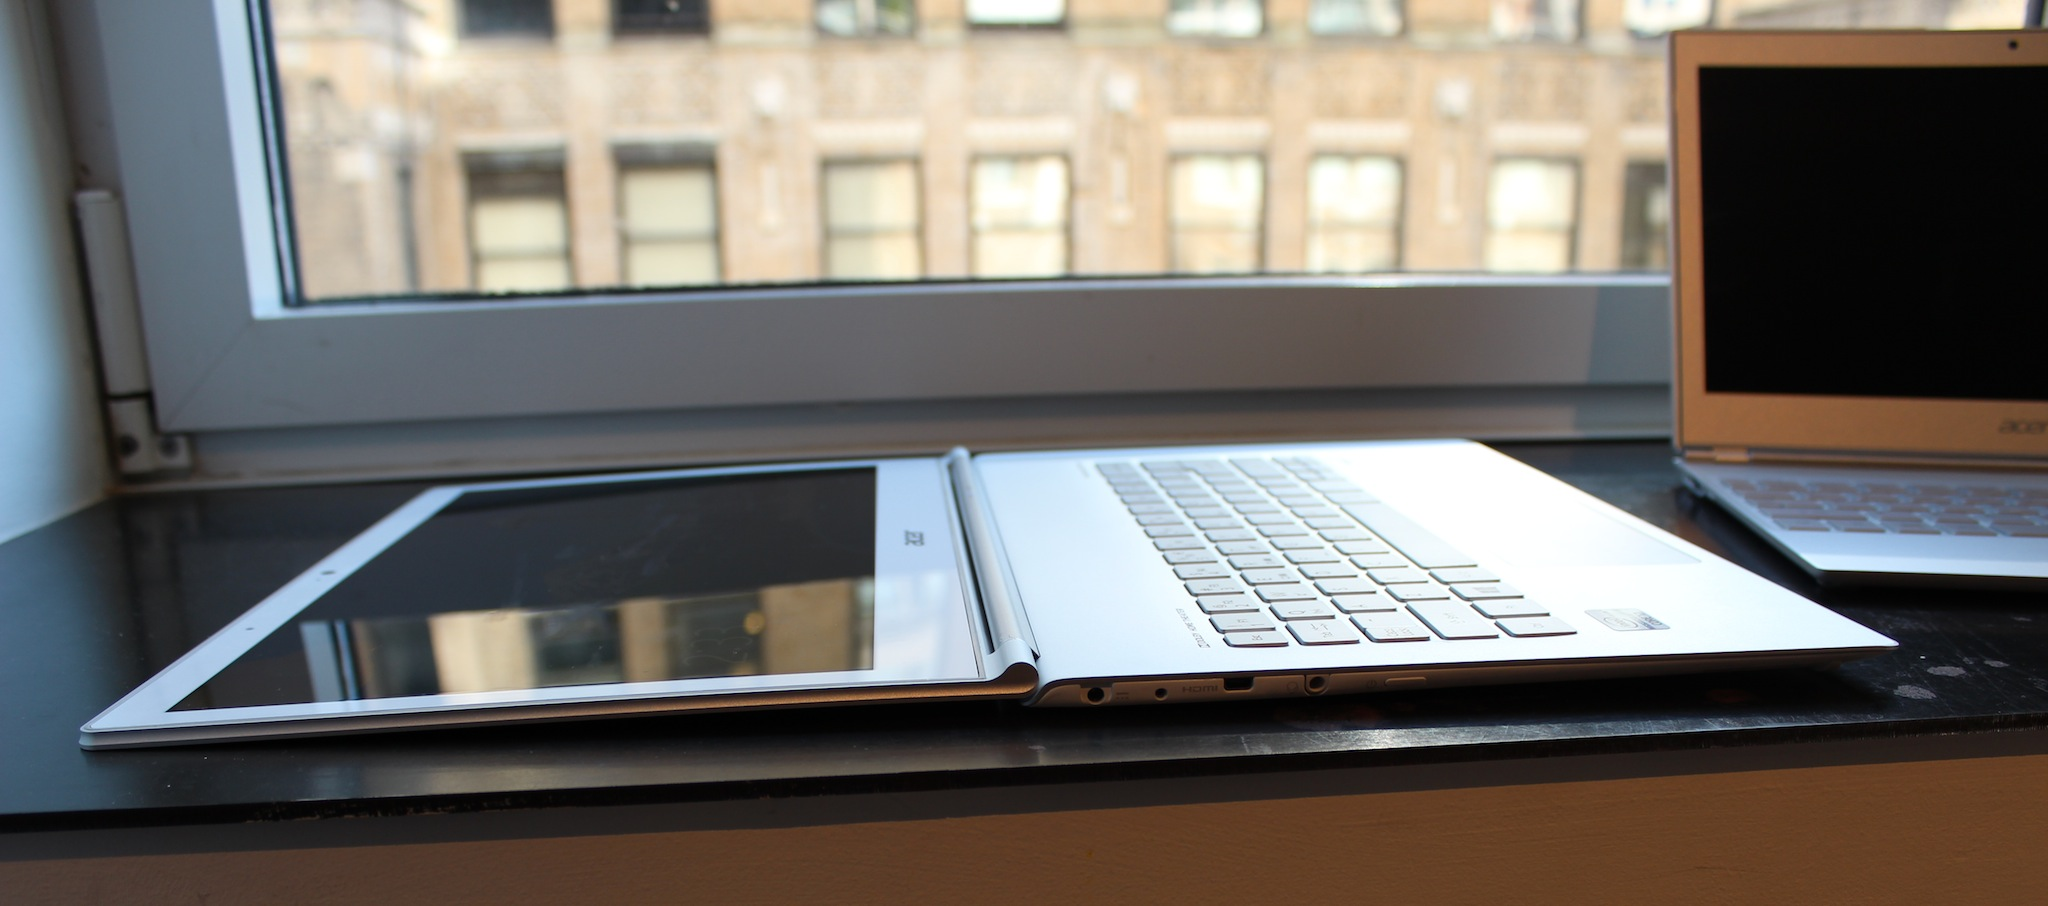 "Both laptops have firm ""dual torque"" hinges, and the 13"" model will fold 180 degrees to lie flat on your desk."